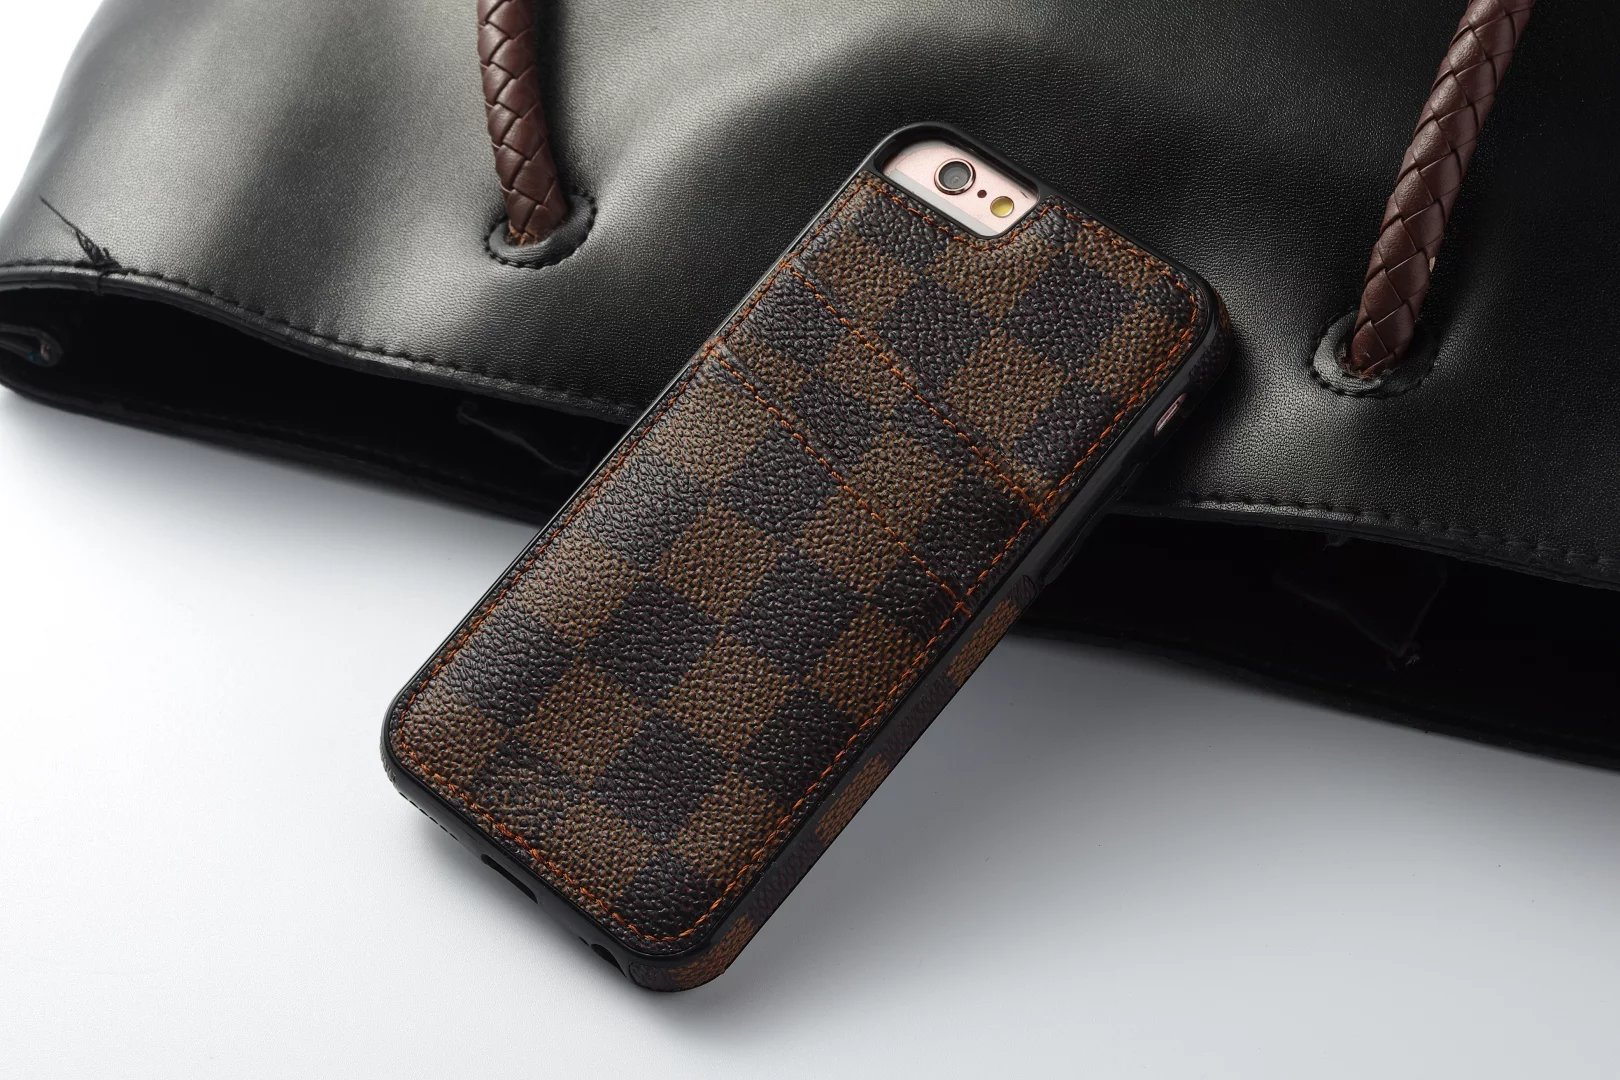 iphone hüllen bestellen iphone case gestalten Louis Vuitton iphone7 hülle iphone 7 hülle was7rdicht bilder iphone 6 iphone silikon ca7 iphone 6 plus hüllen apple iphone 7 leather ca7 iphone 7 hulle